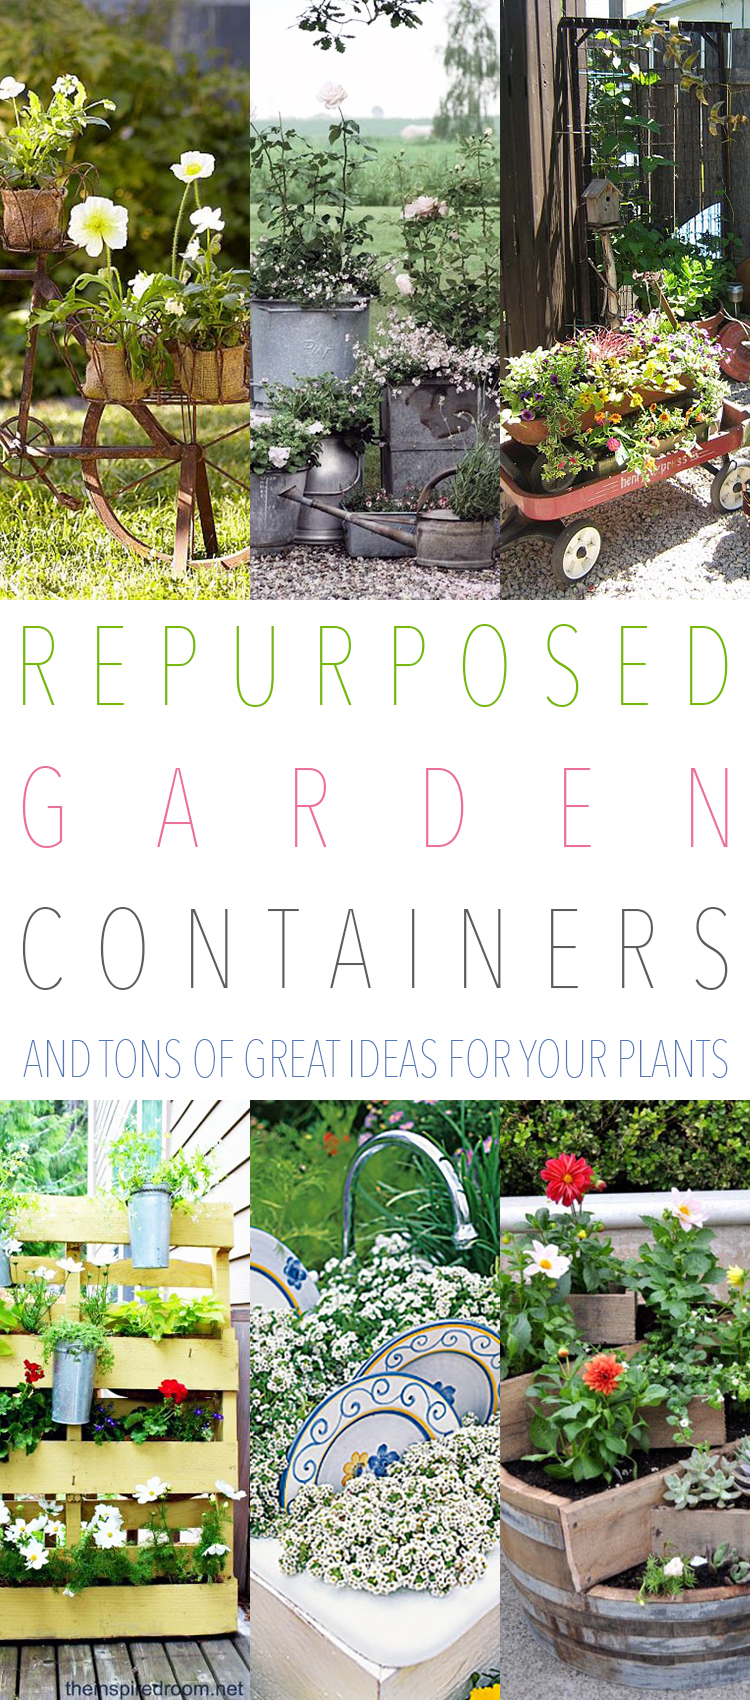 Today Itu0027s All About Repurposed Garden Containersu2026the Most Unlikely Items  Make The Best Home Sweet Home For Flowers And Plants!